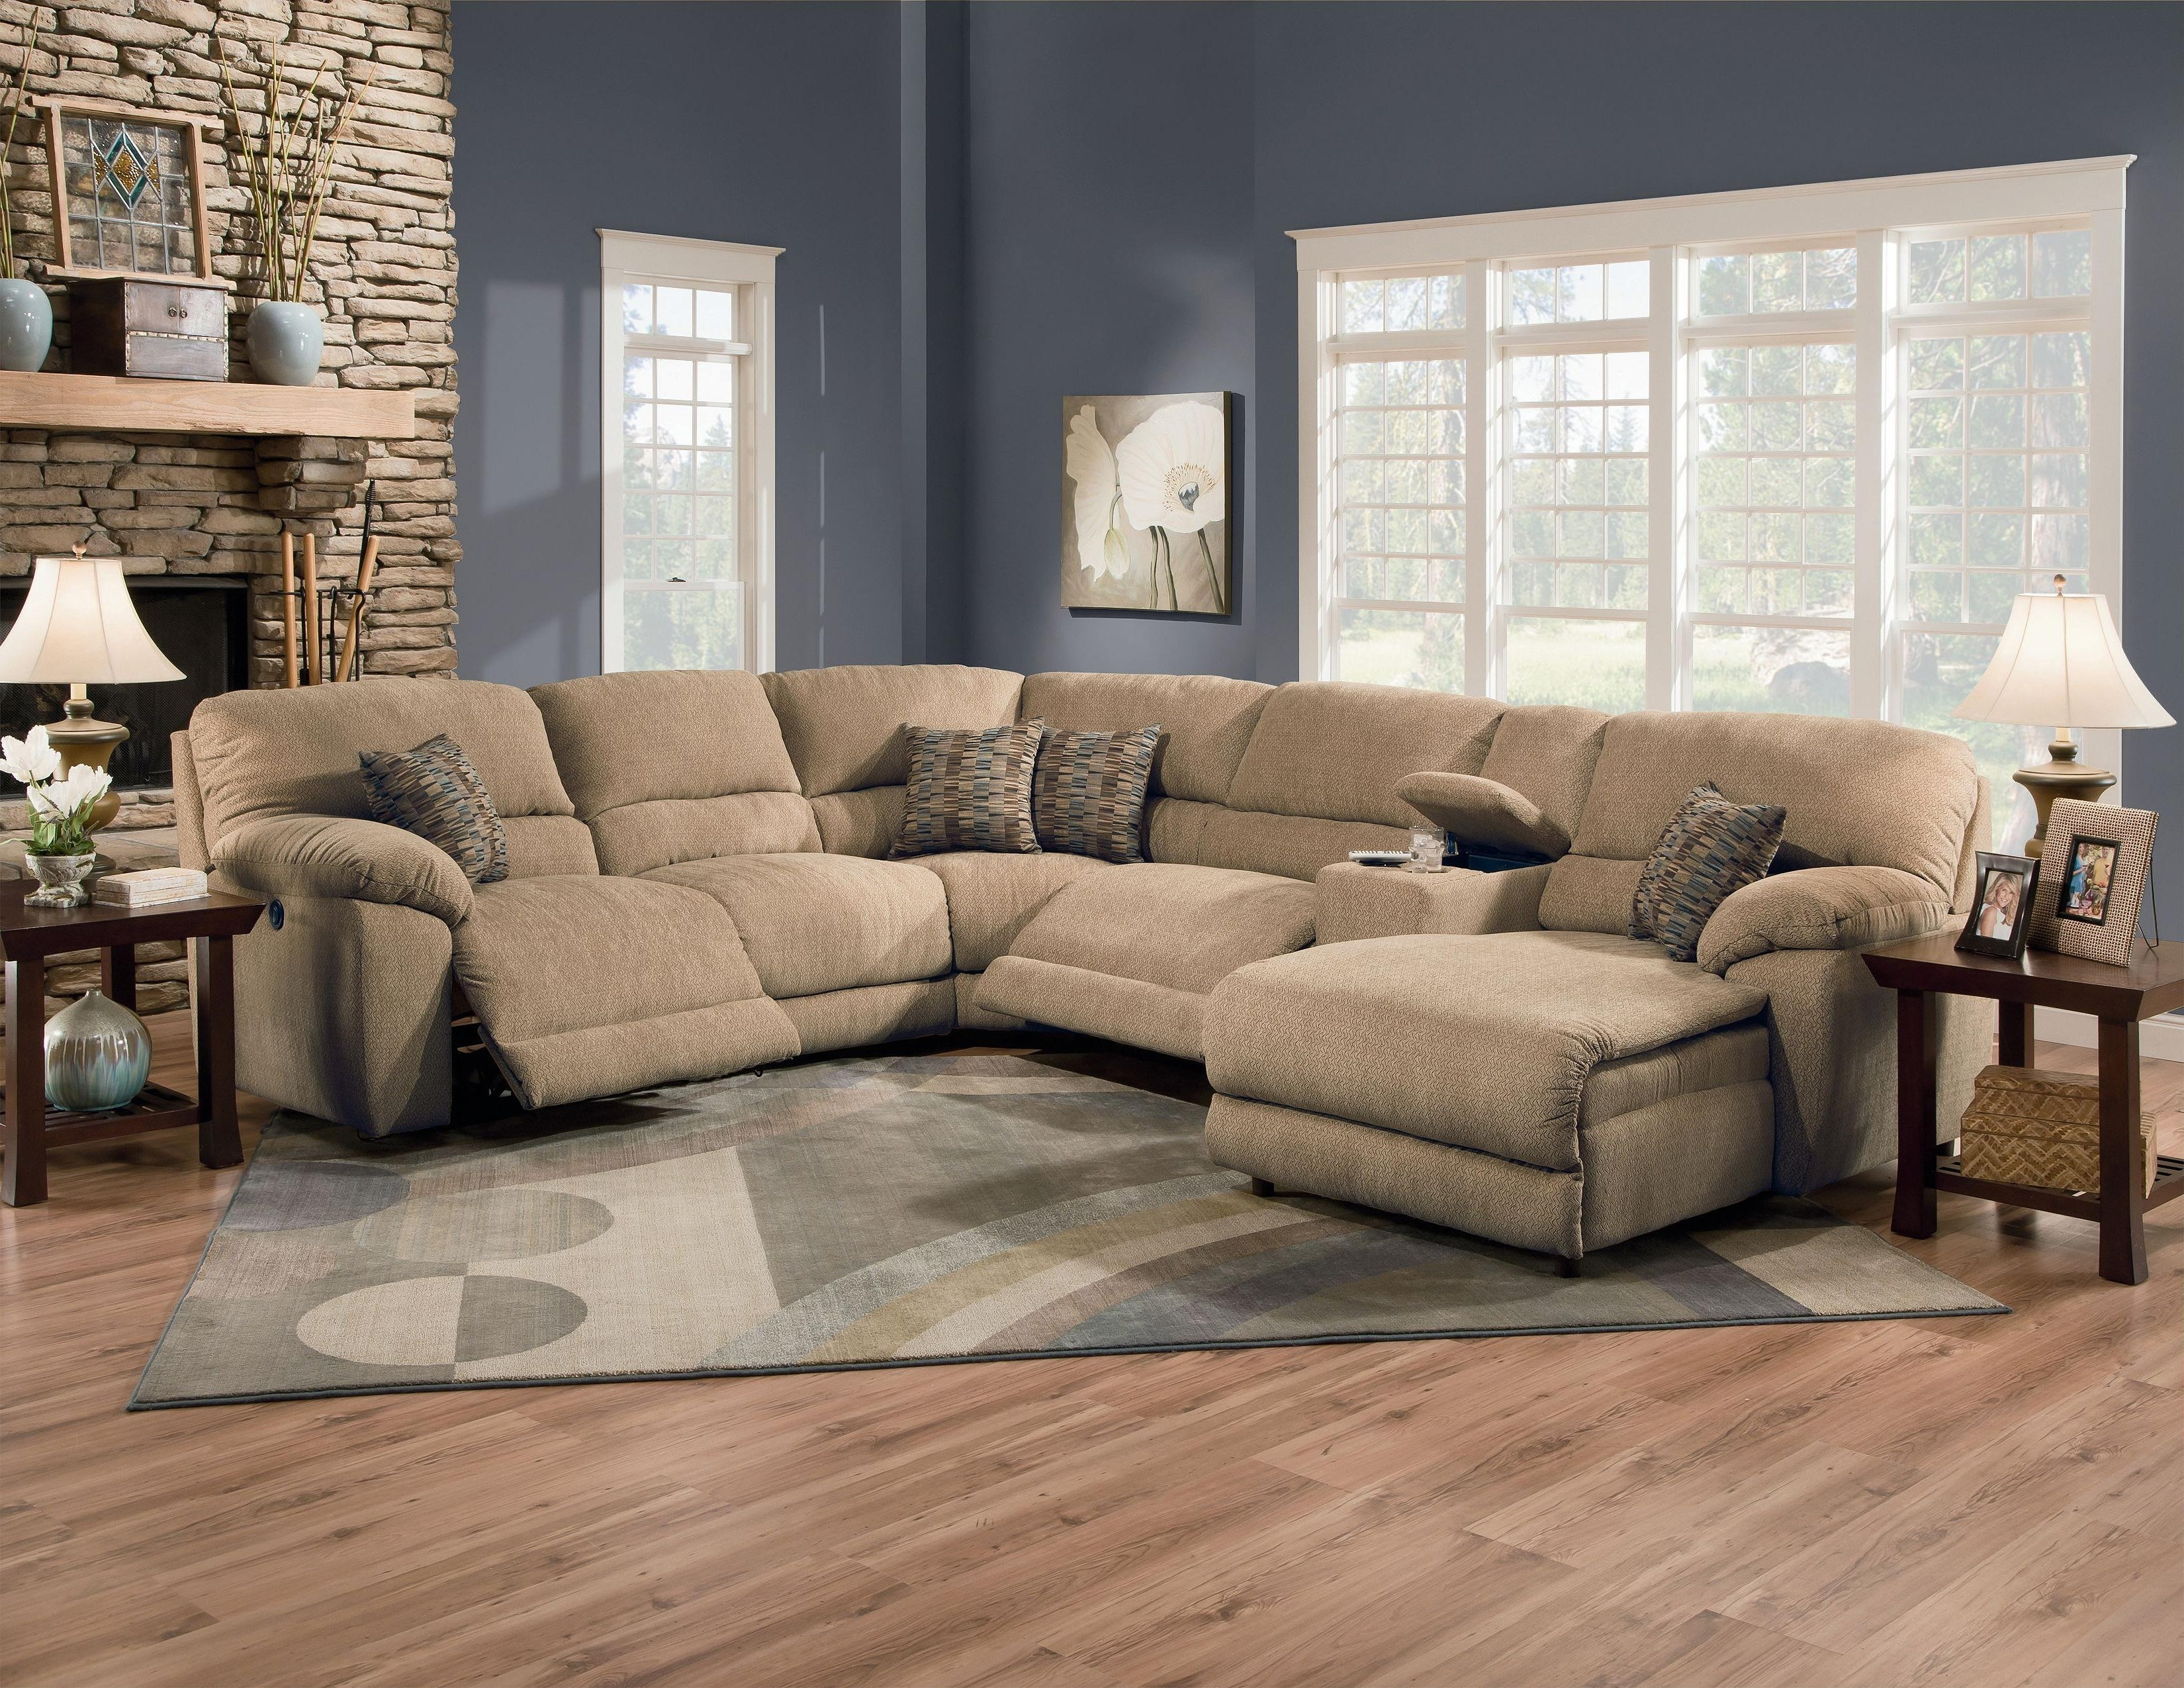 Nashville Sectional Sofas With Trendy Lane Furniture: Rivers Collection Featuring Power Reclining (View 15 of 20)